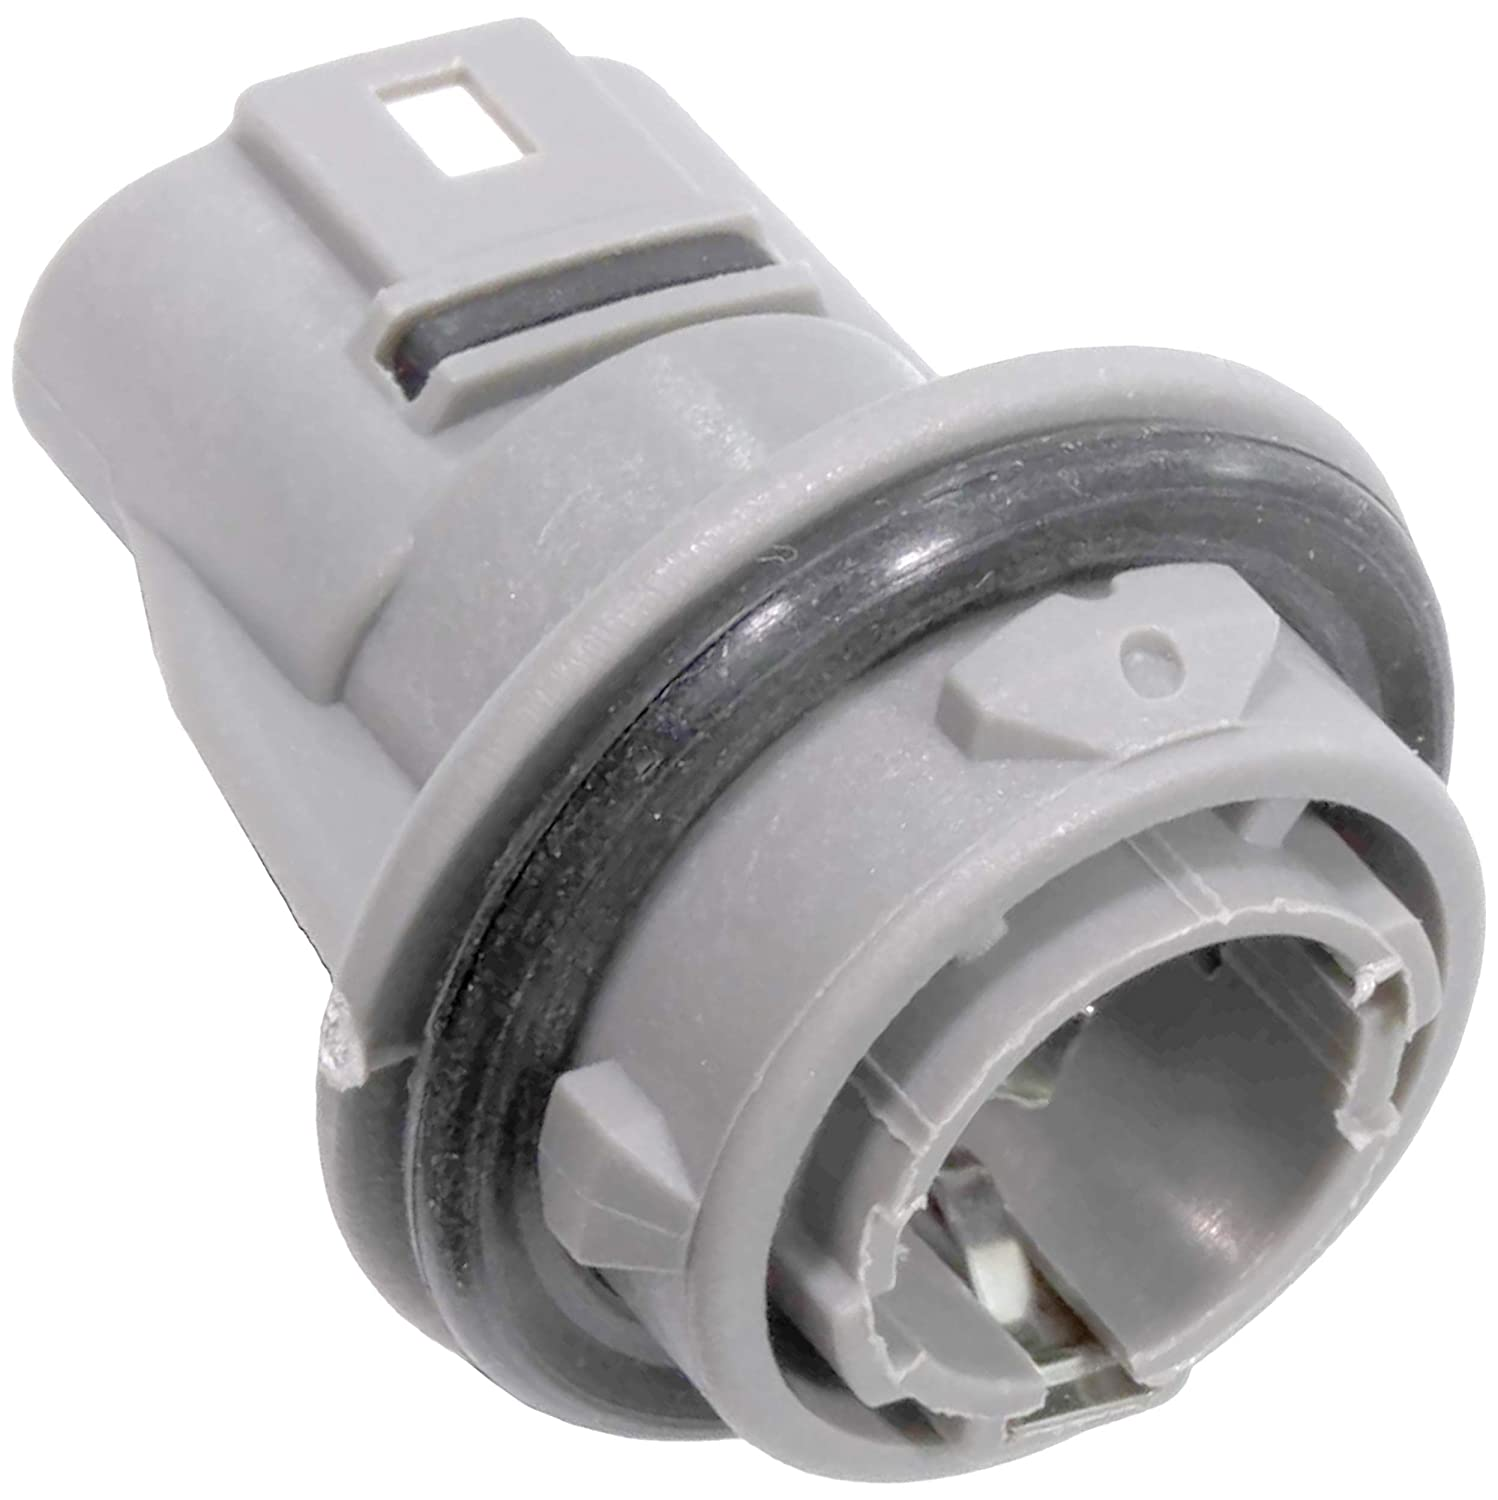 Lamp Bulb Socket For Wiring A Double